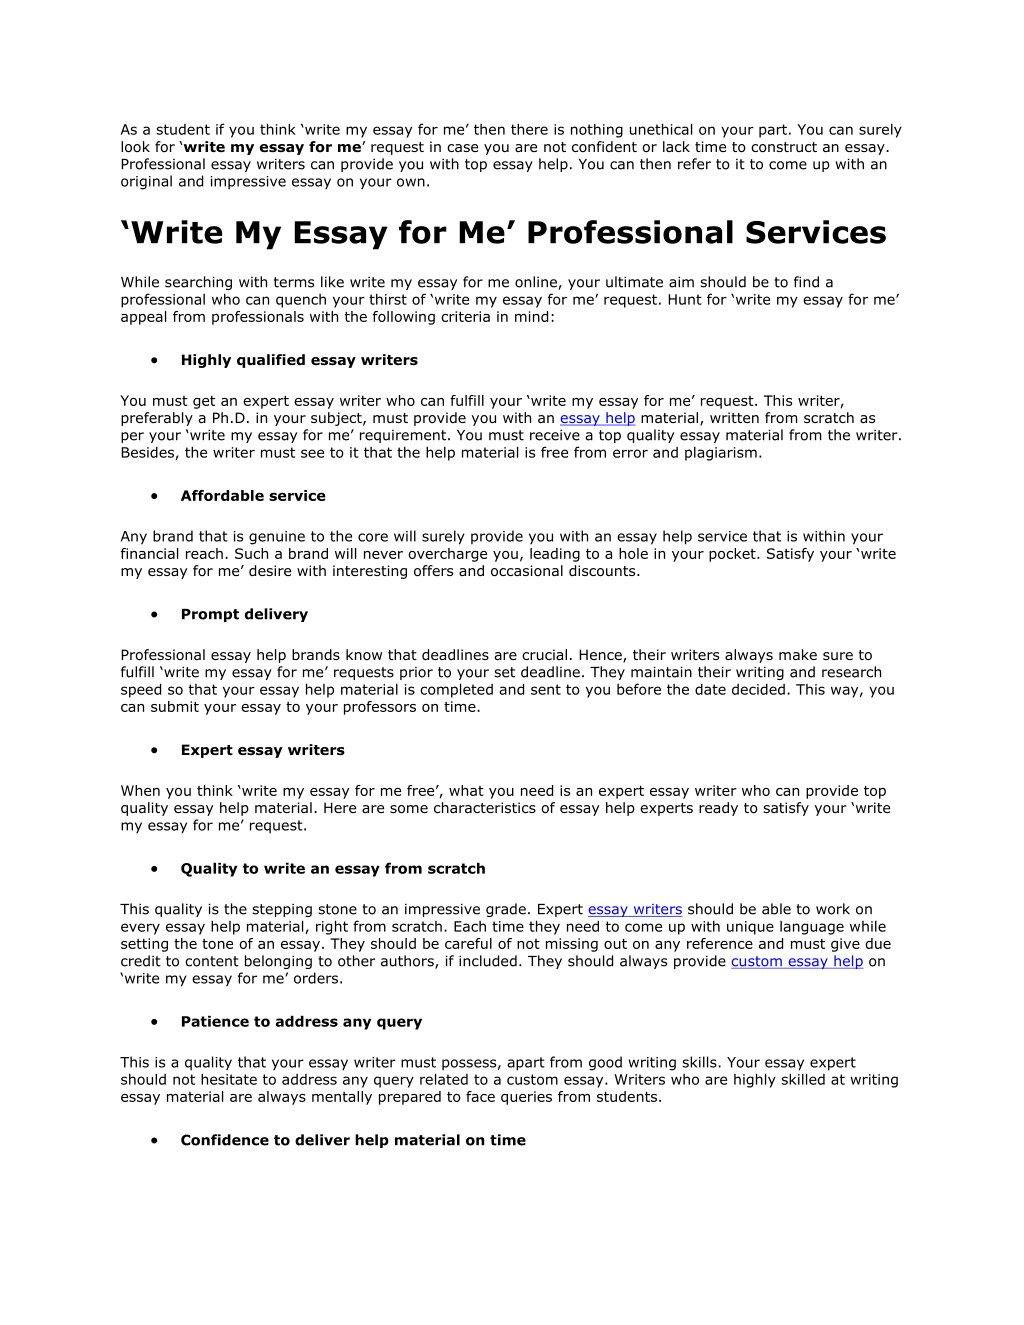 006 Essay Example Write For Me As Student If You Think My Amazing Discount Code Online Free Full